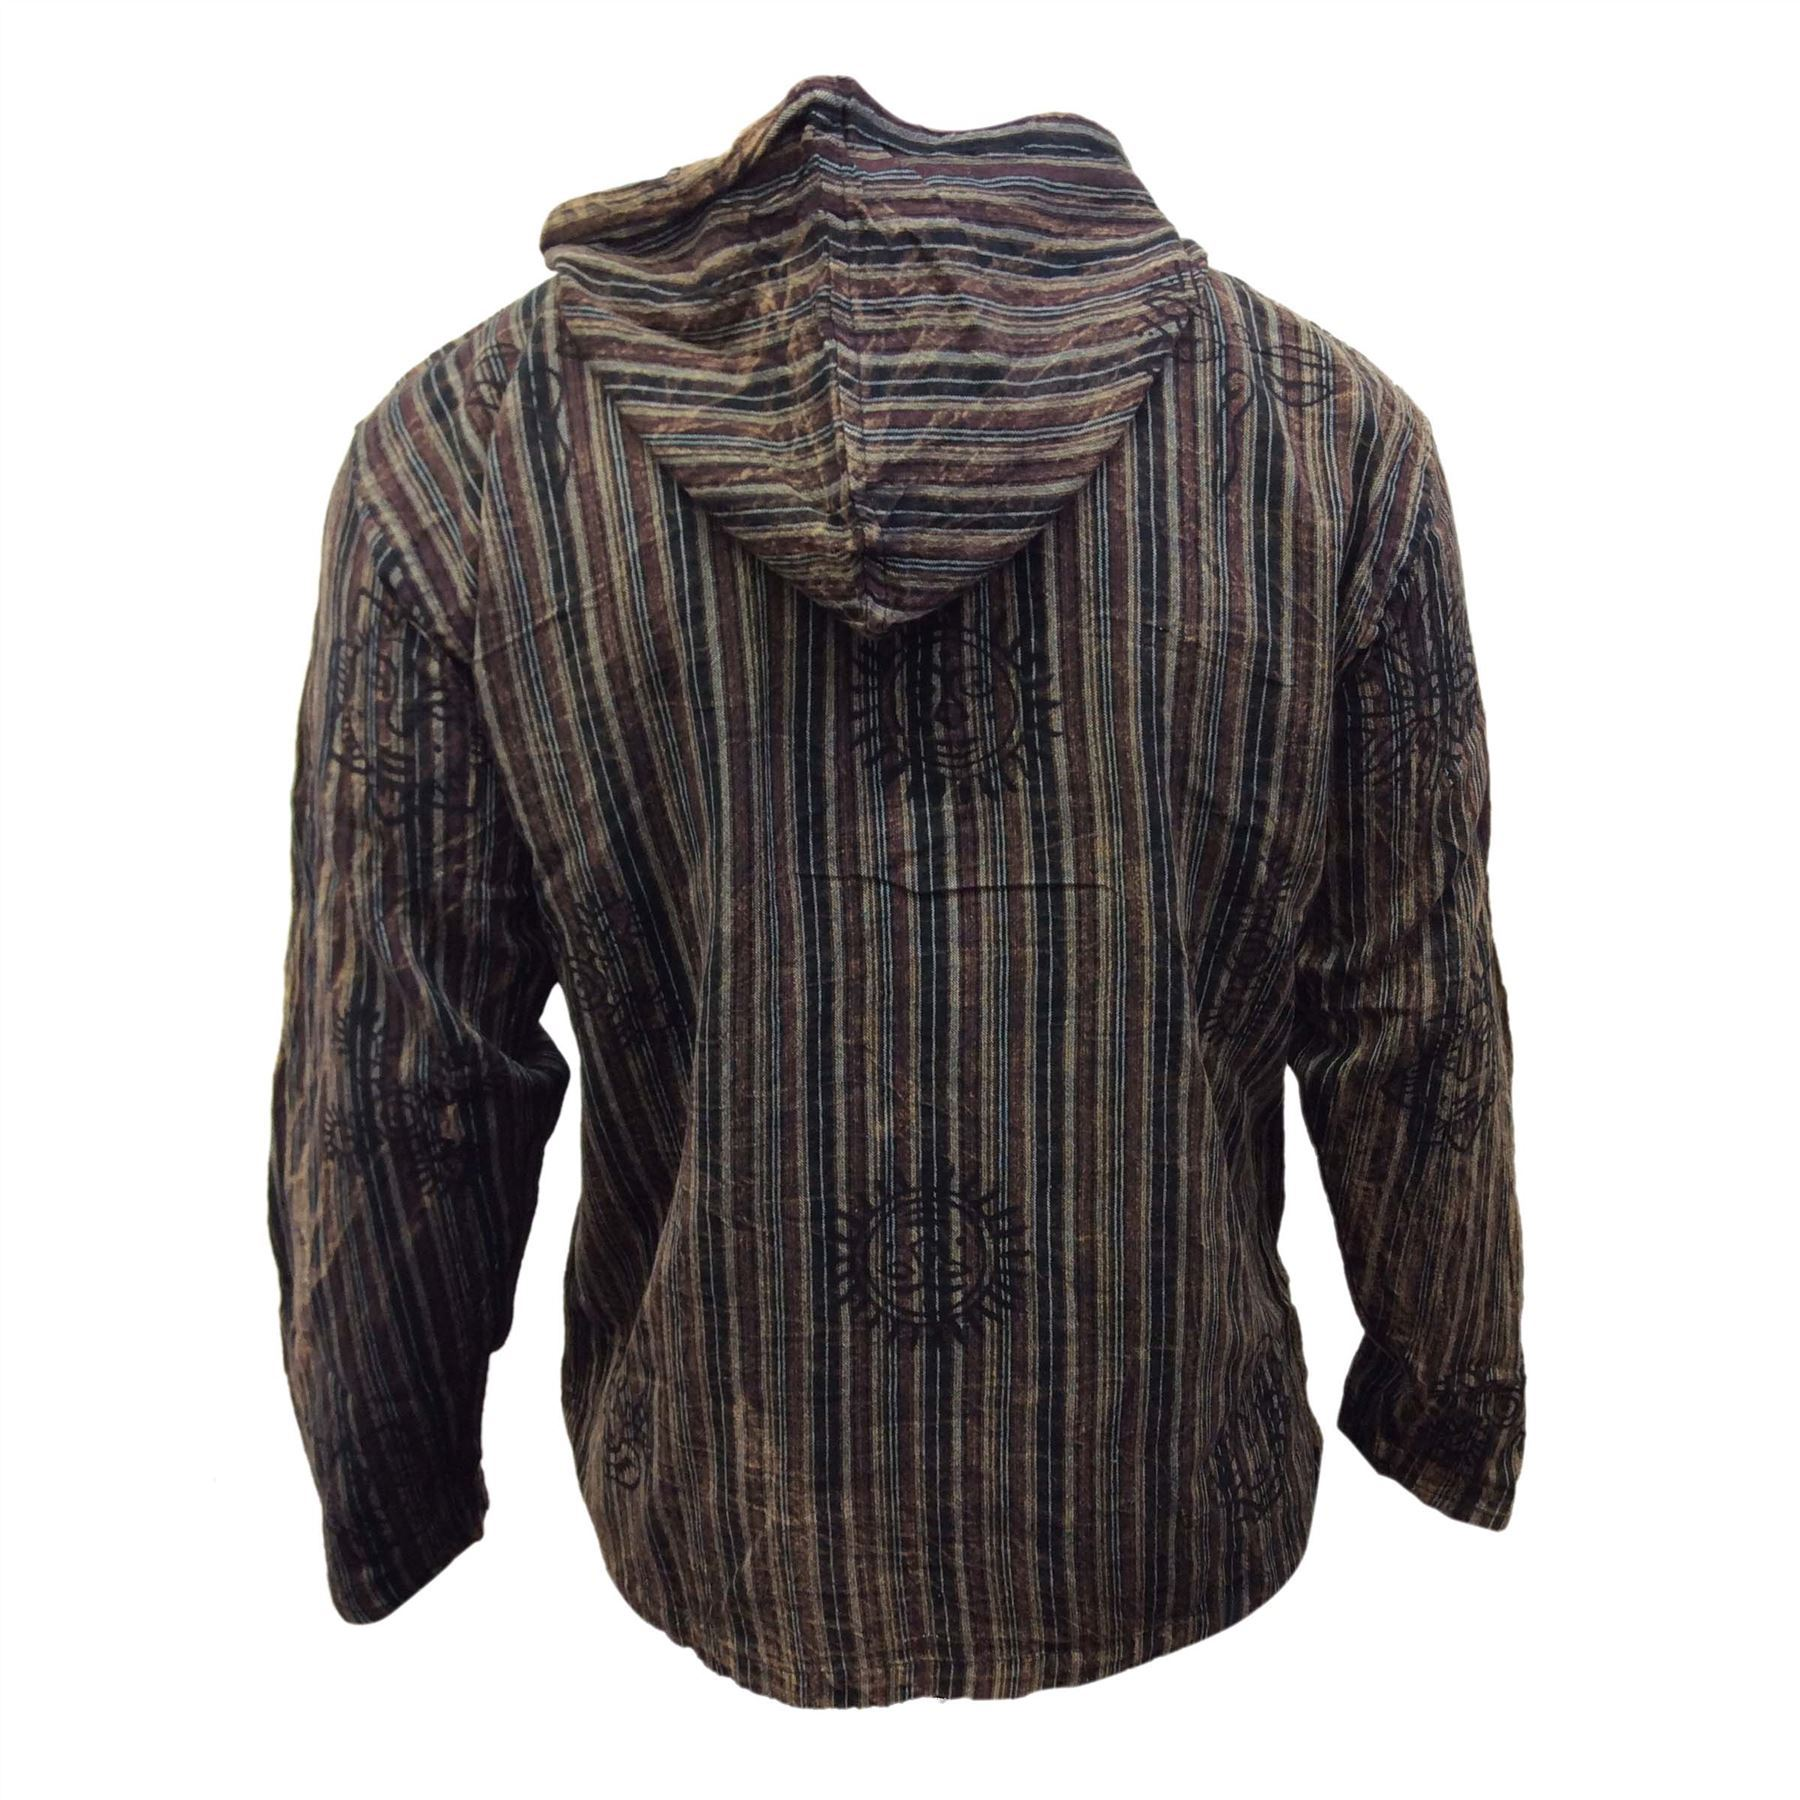 Mens-Stonewashed-Striped-Hooded-Grandad-Shirt-Long-Sleeve-Casual-Hooded-Top thumbnail 10